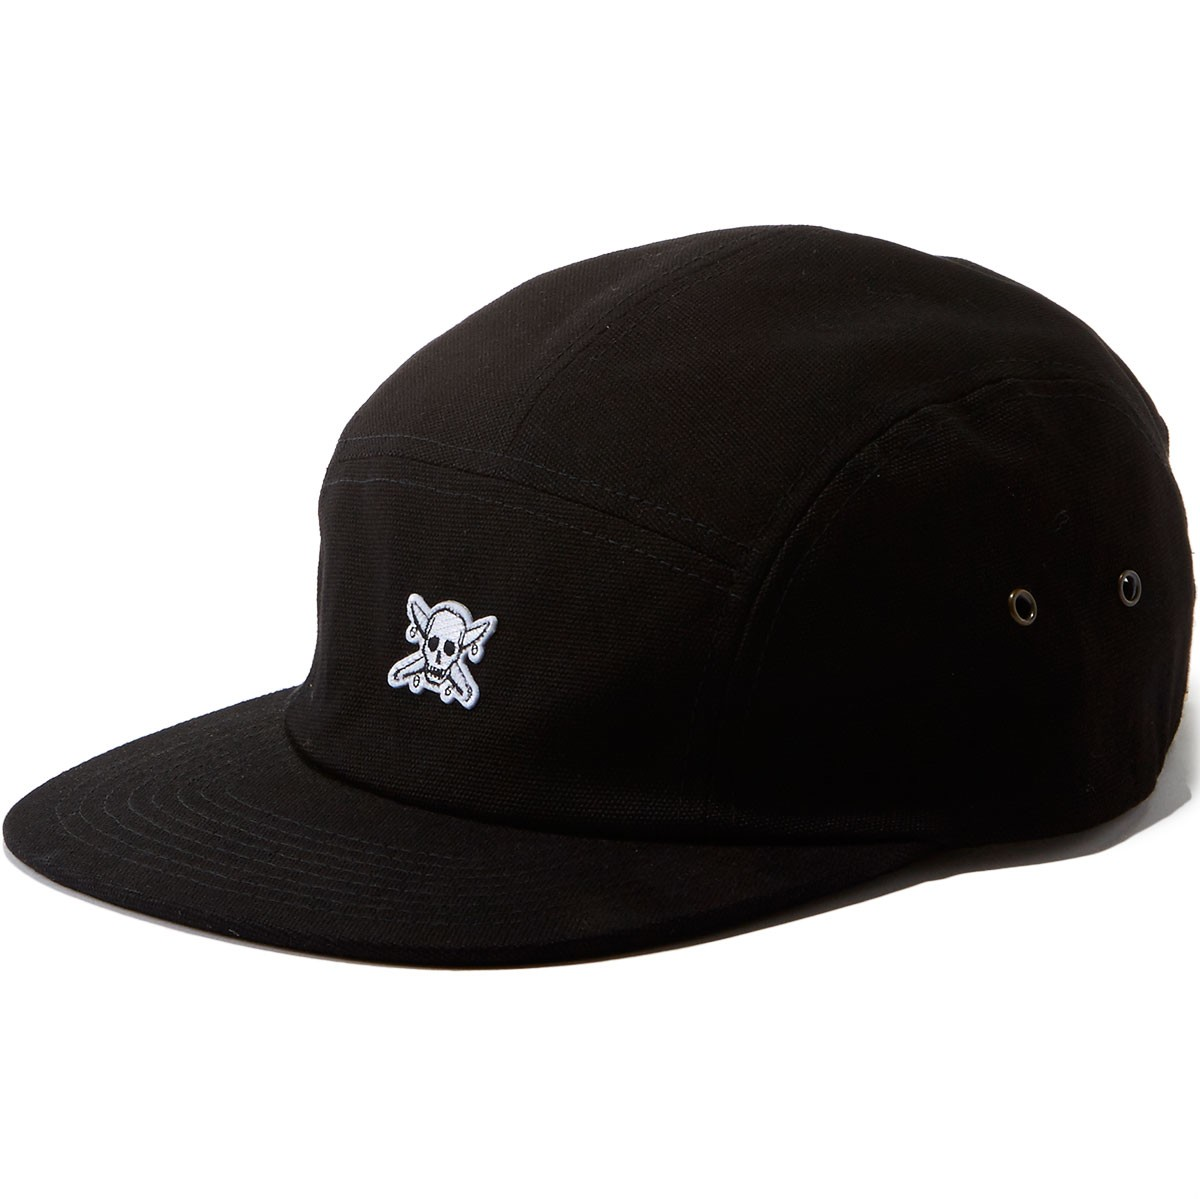 Fourstar Icon Camper Fall 2016 Hat - Black